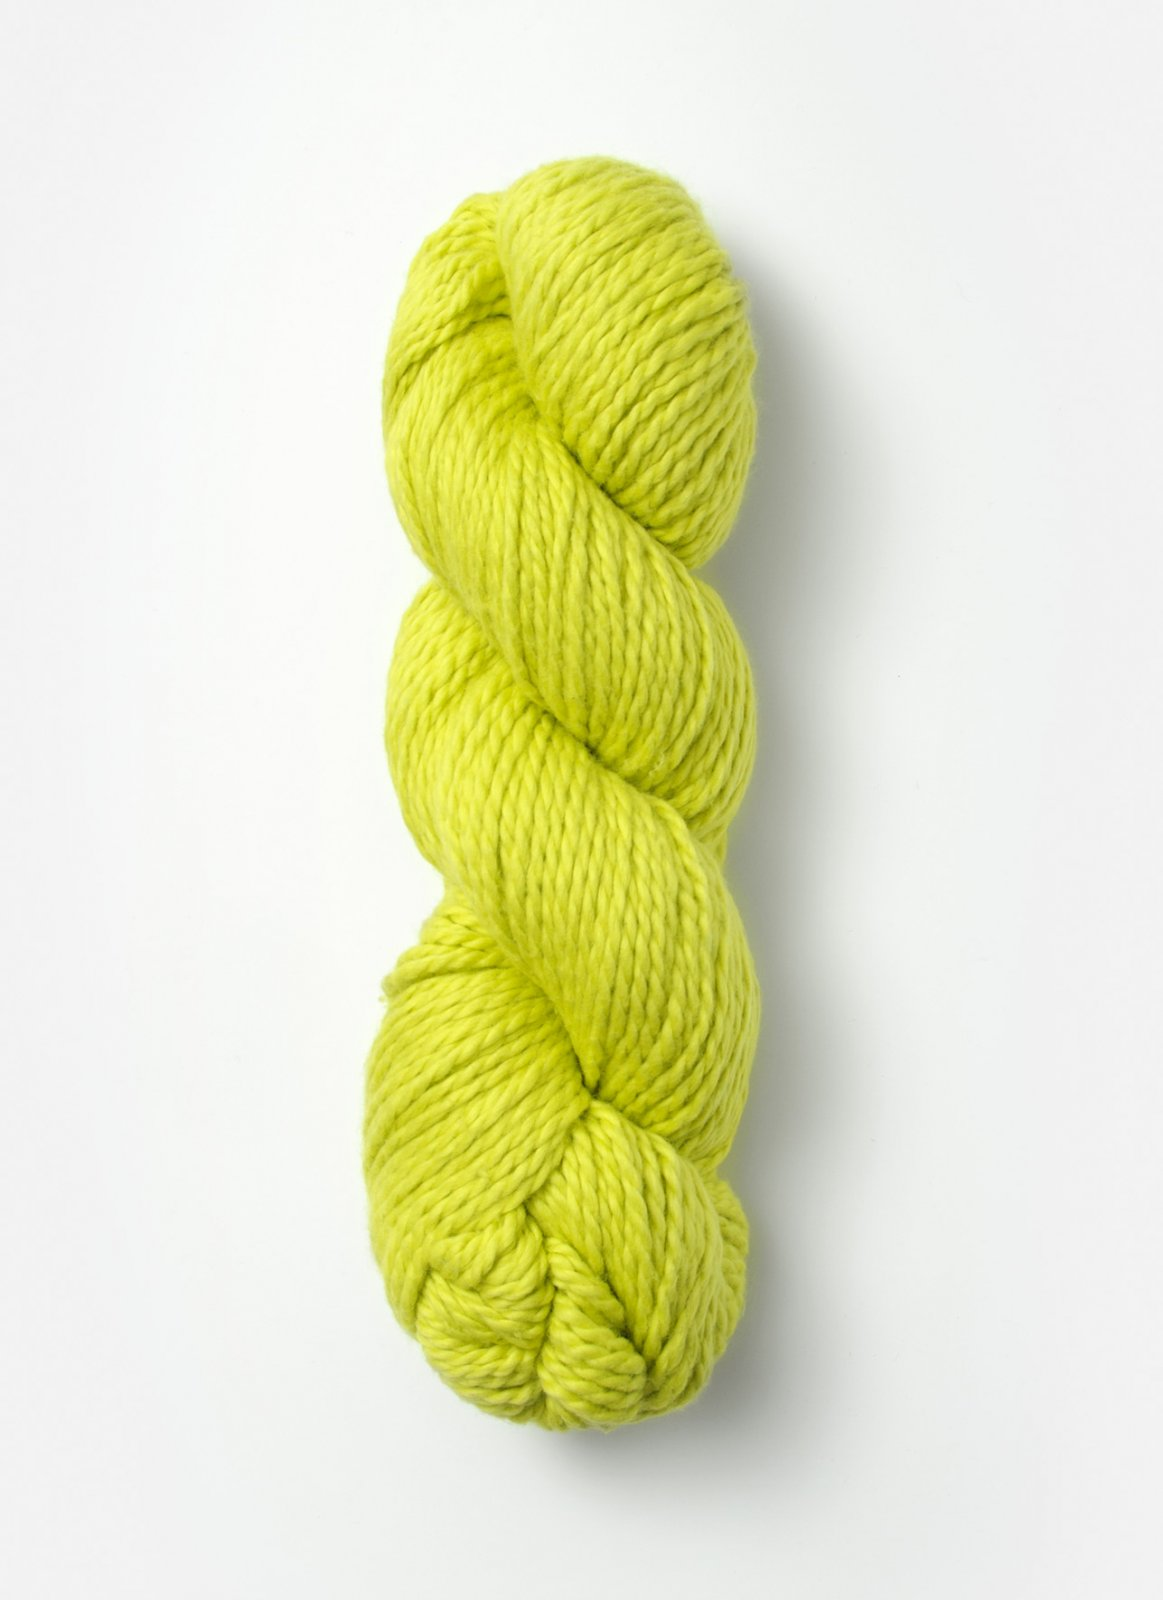 Blue Sky Organic Cotton - Lemongrass